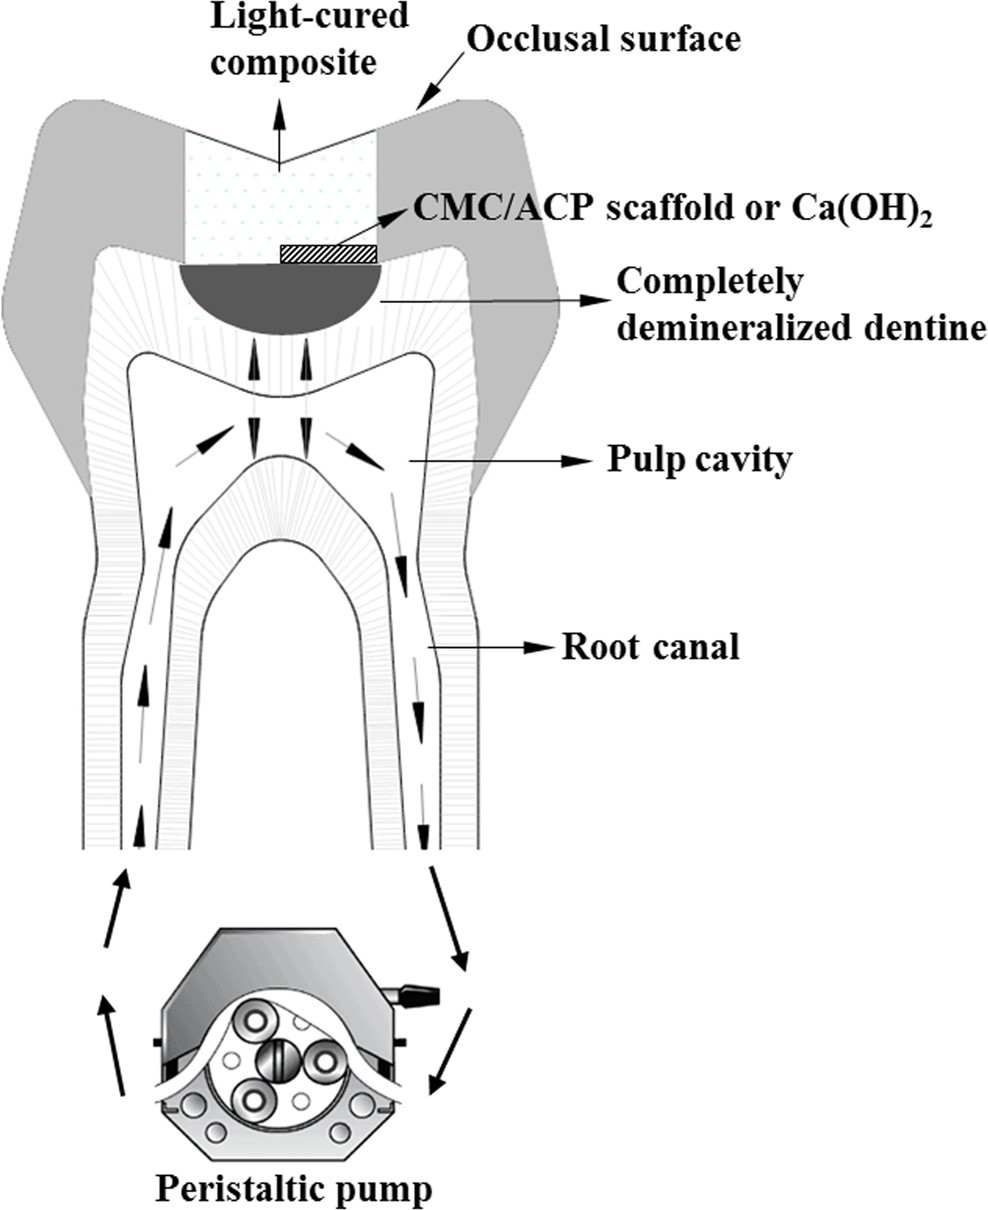 The scheme of tooth model of deep caries.